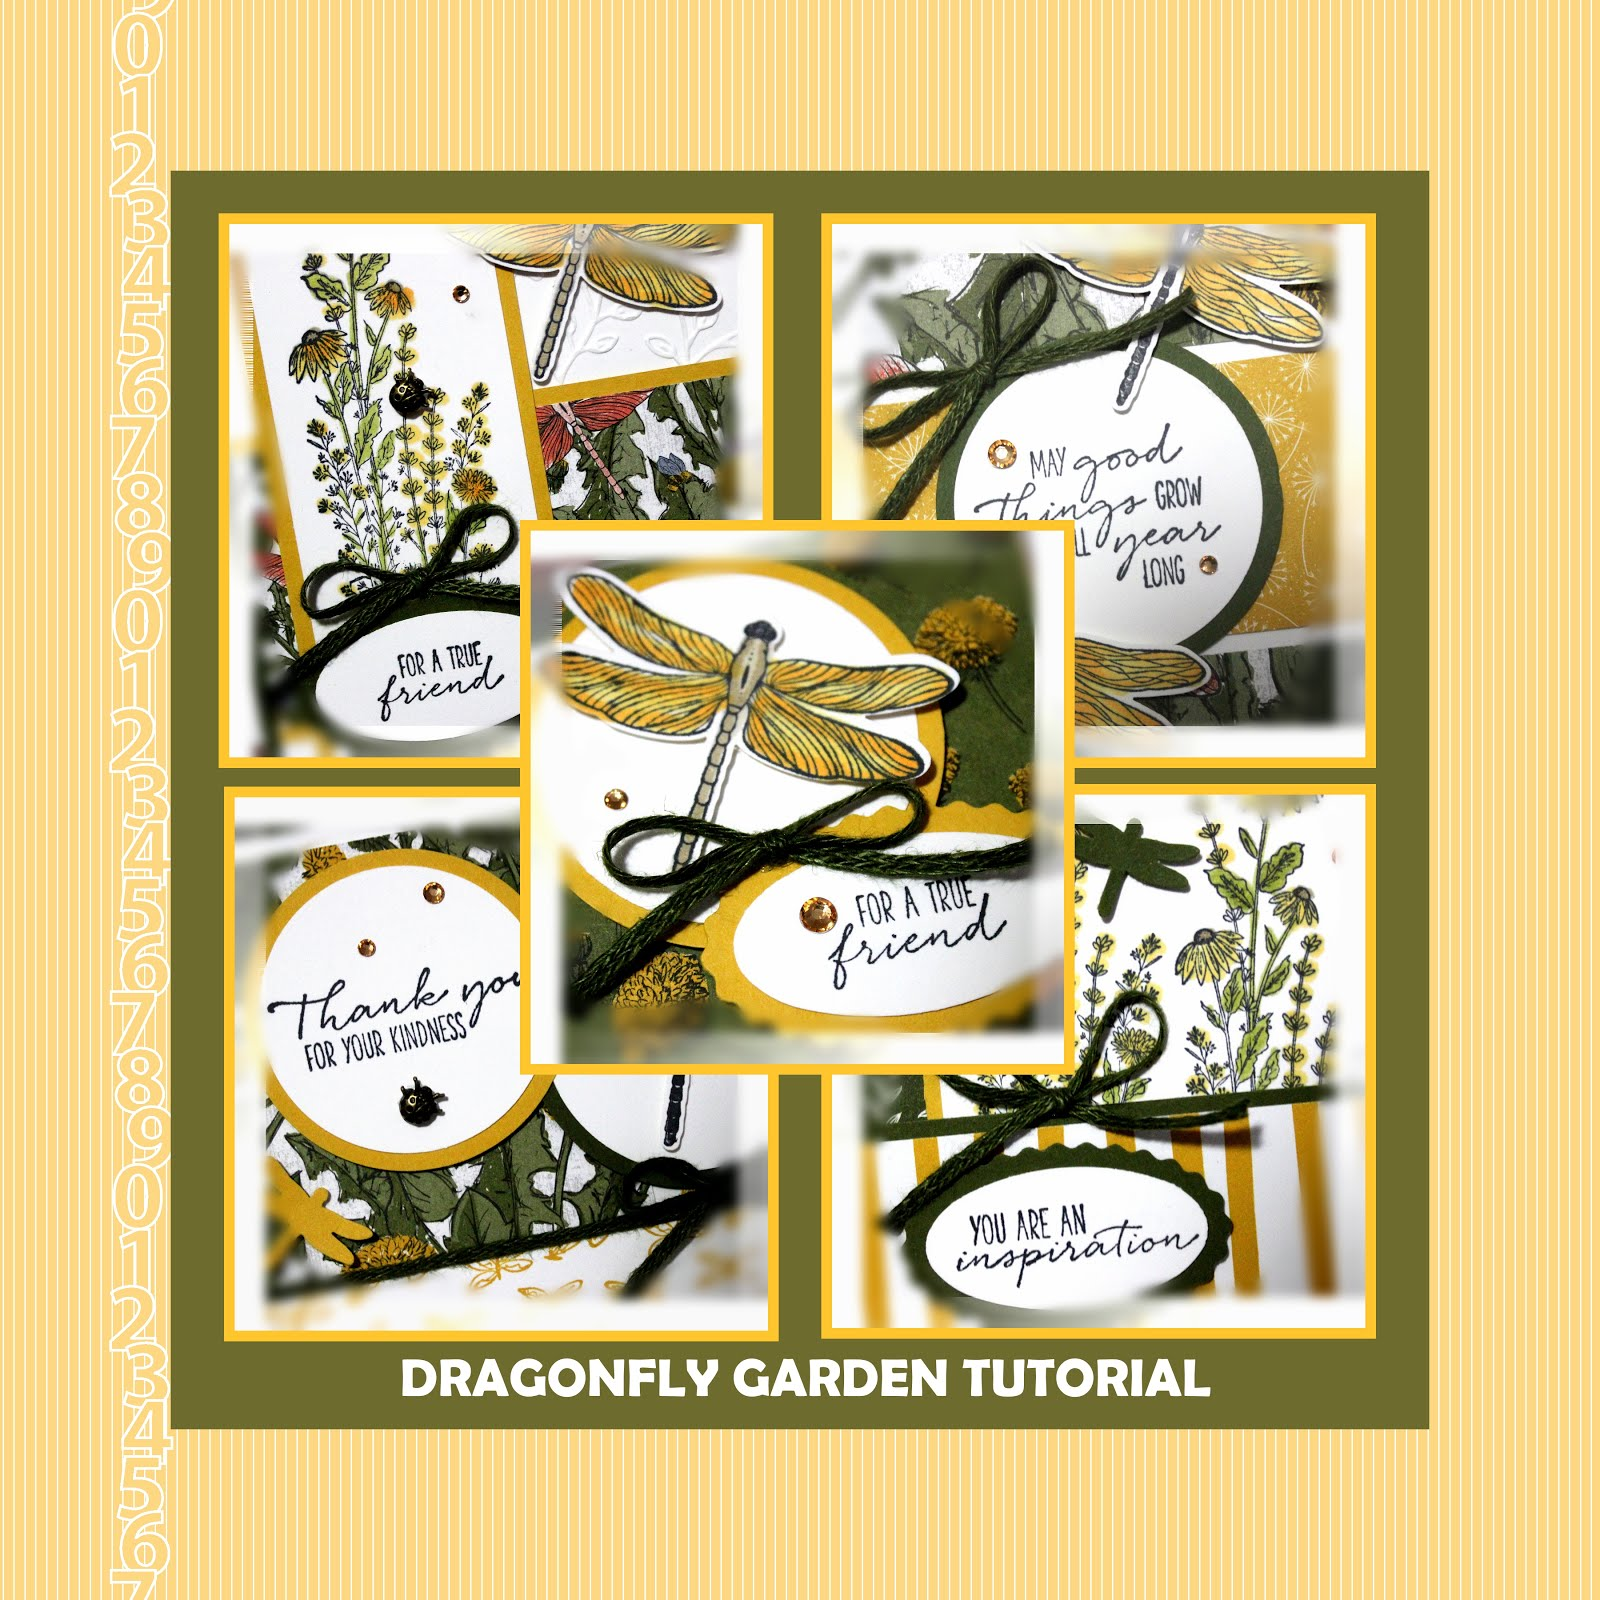 February 2021 Dragonfly Garden Tutorial